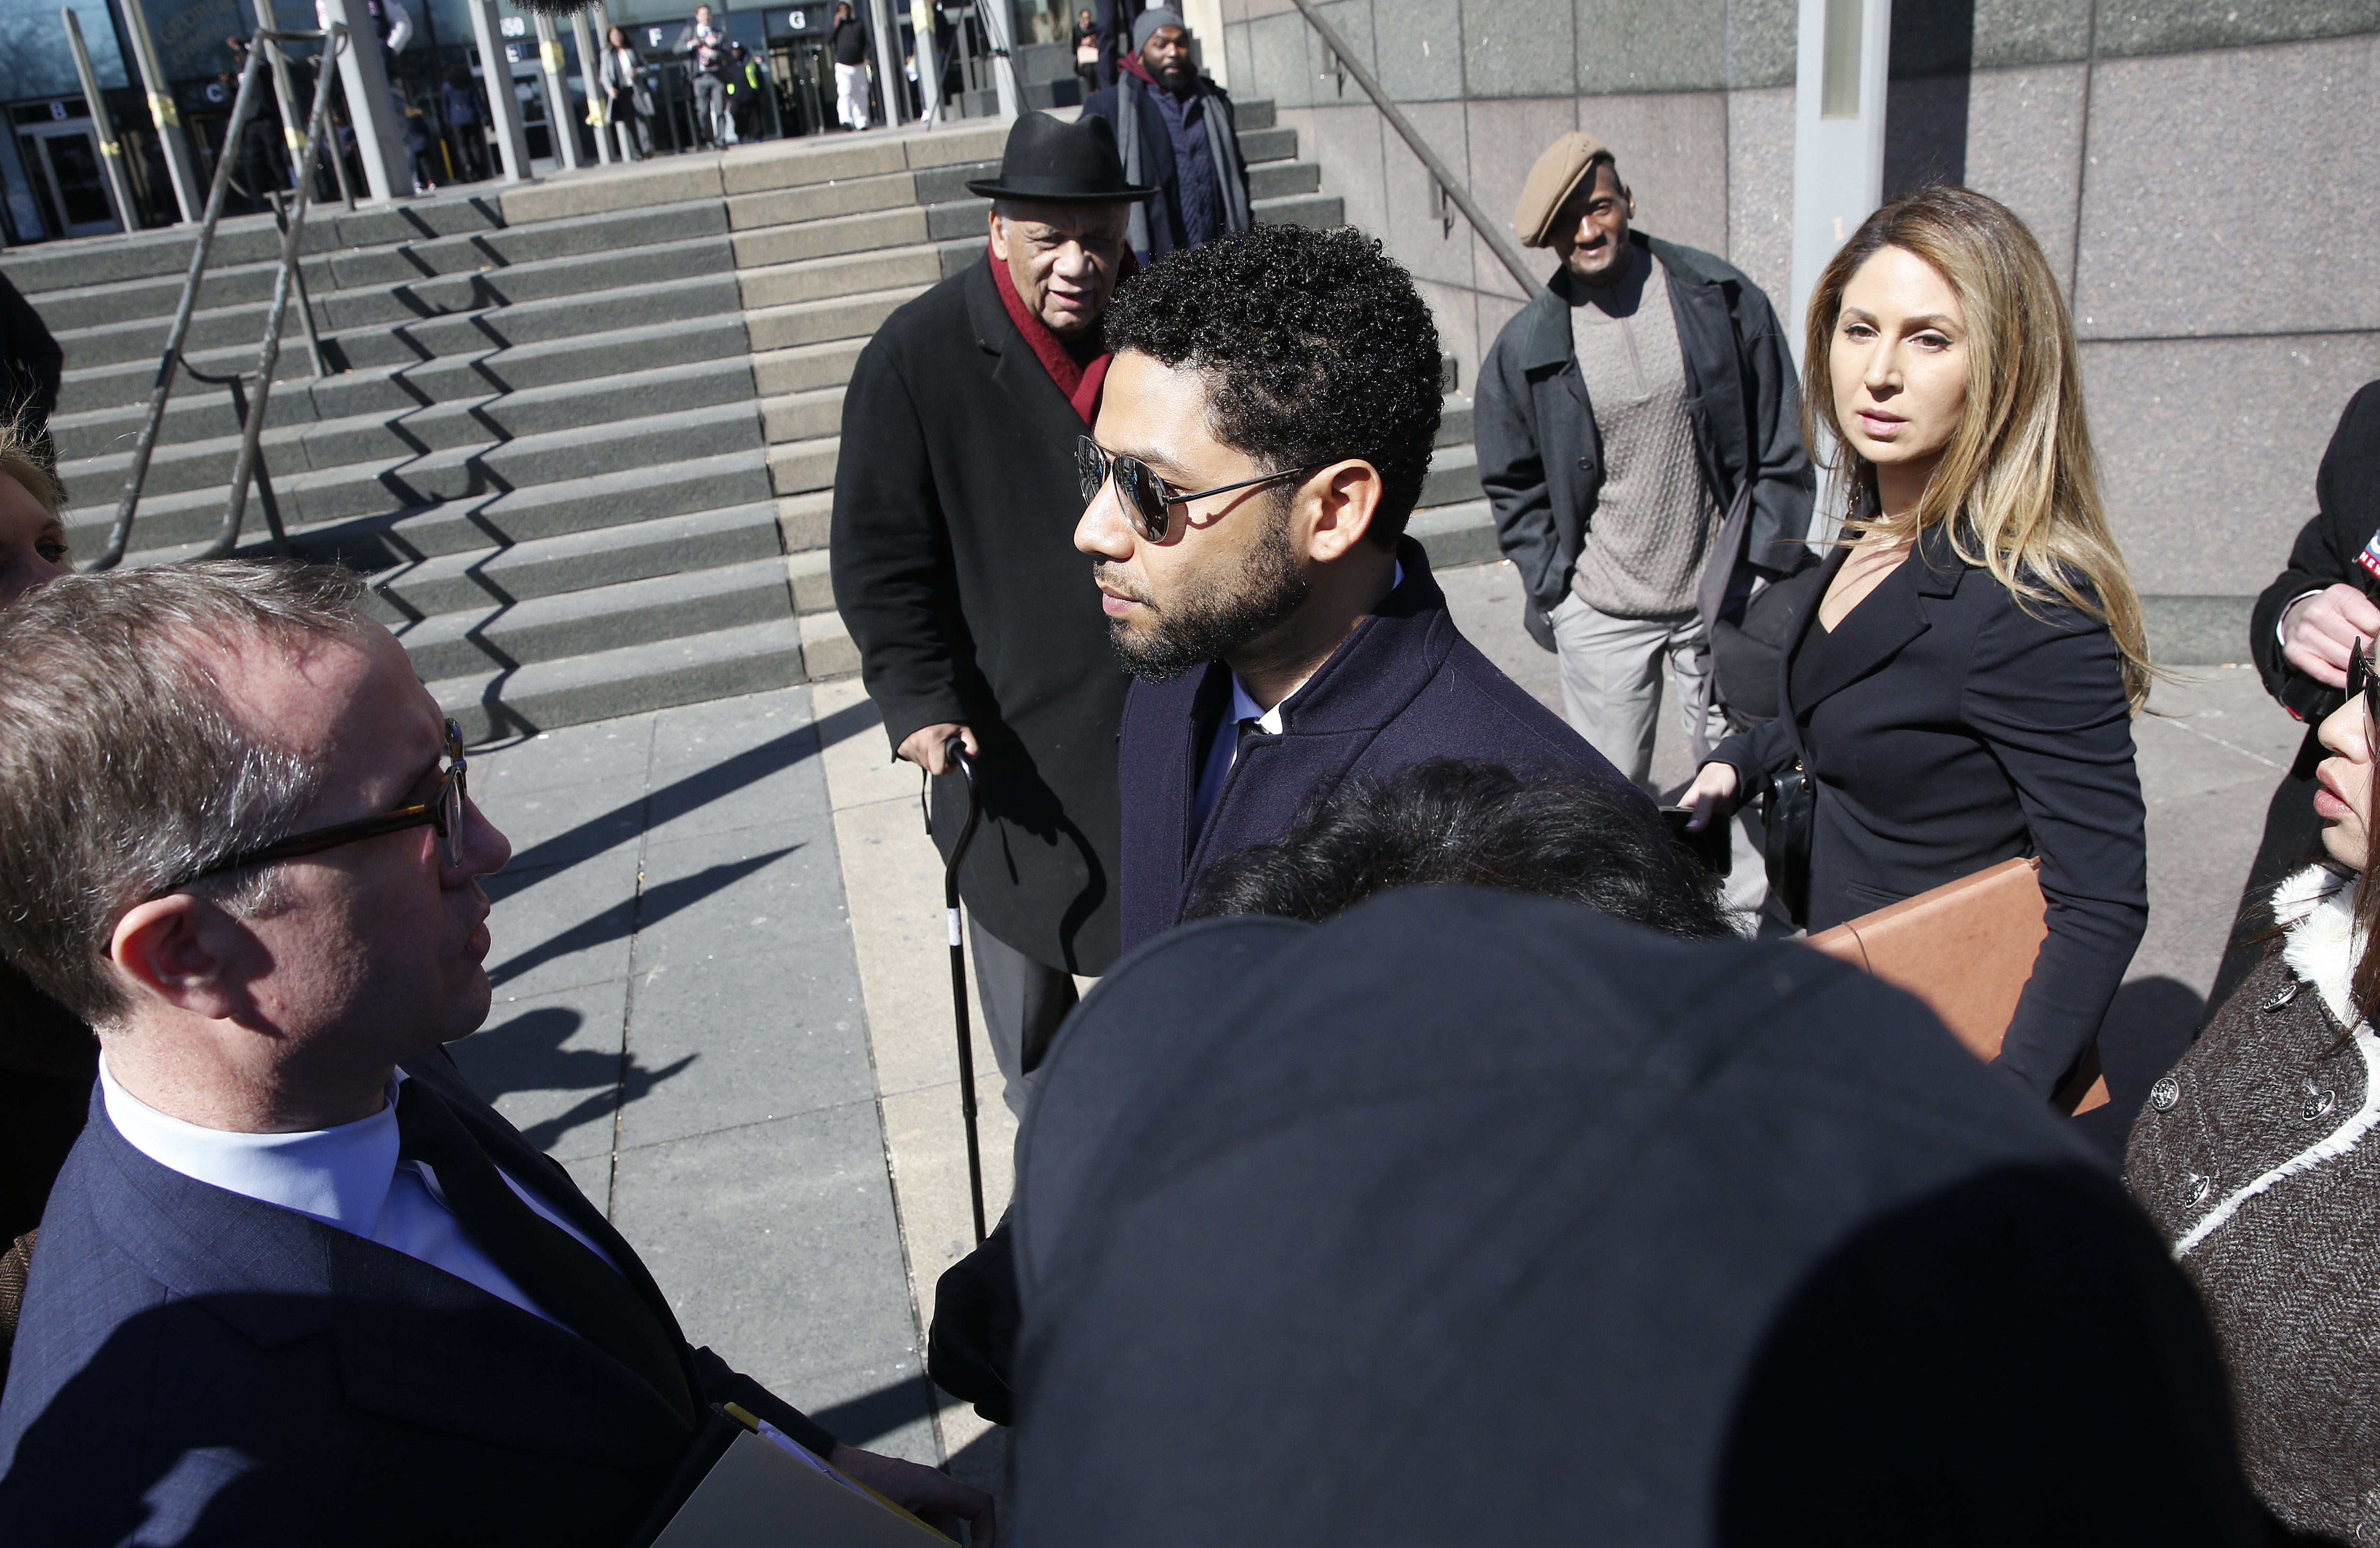 Actor Jussie Smollett leaves after his court appearance at Leighton Courthouse on March 26, 2019 in Chicago, Illinois. This morning in court it was announced that all charges were dropped against the actor. (Photo by Nuccio DiNuzzo/Getty Images)